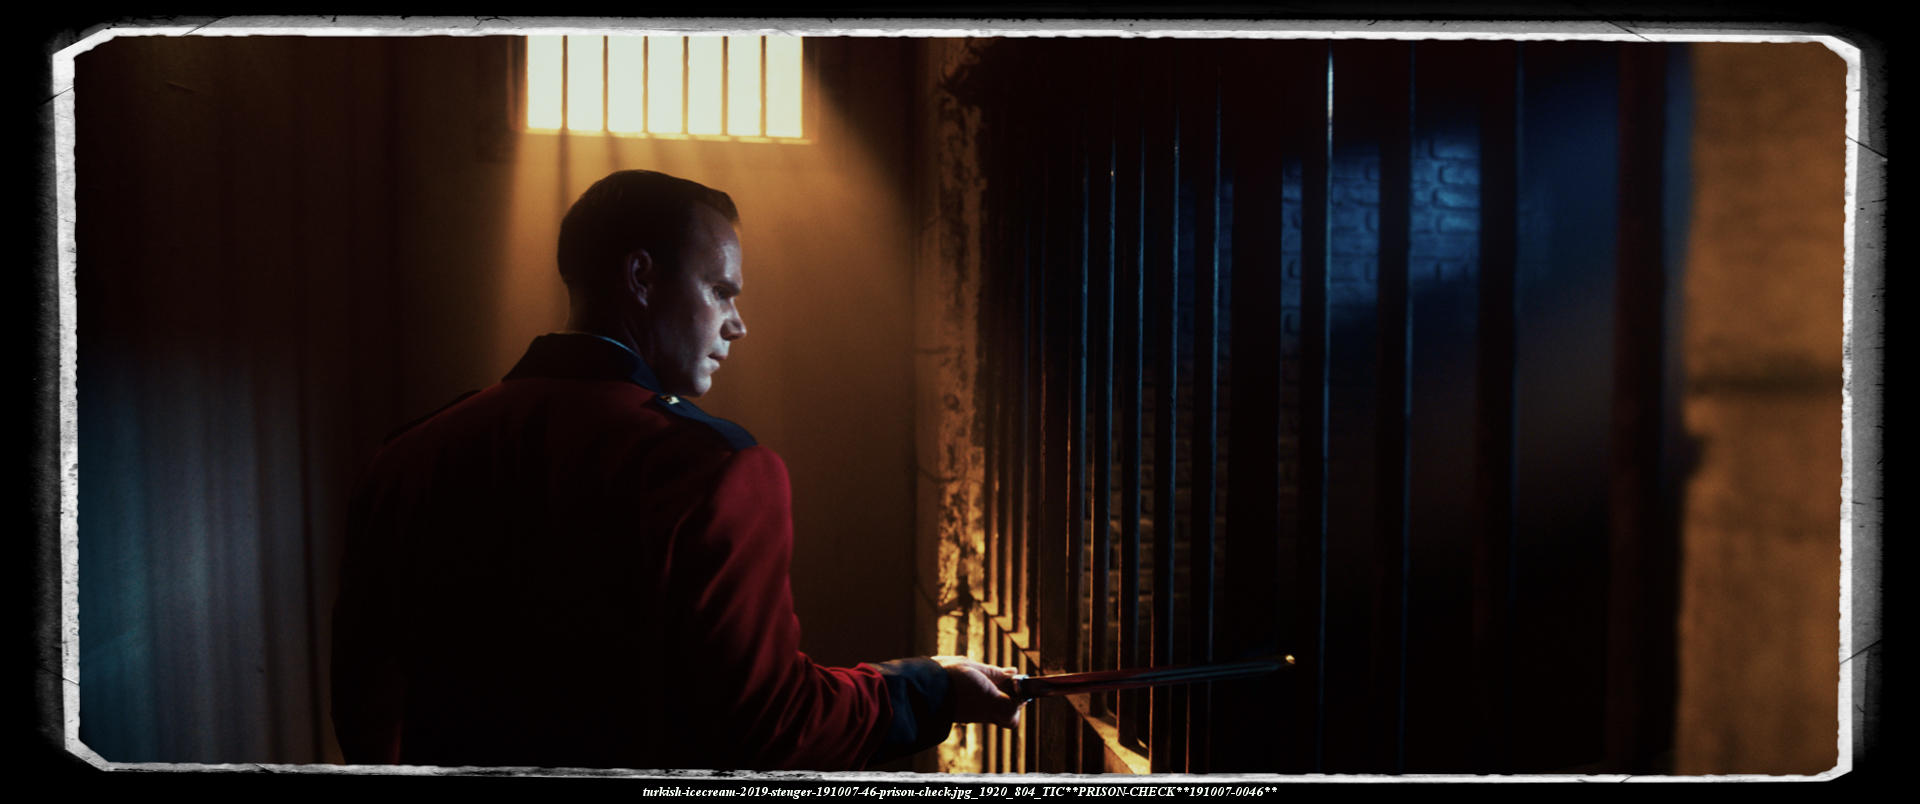 captain Wayne is checking the inmates of his prison at night